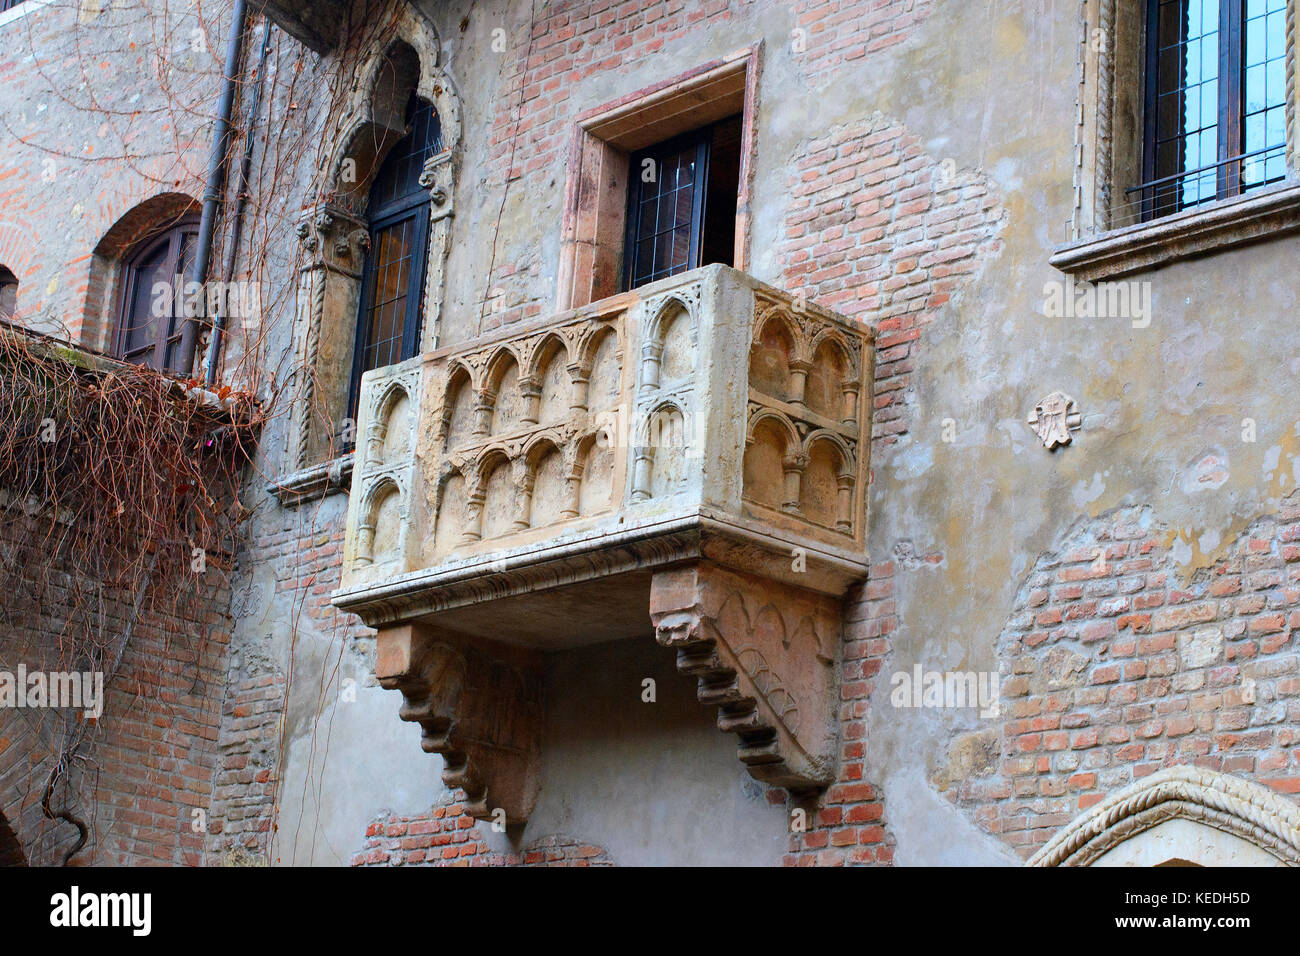 Famous balcony stock photos famous balcony stock images for Famous balcony